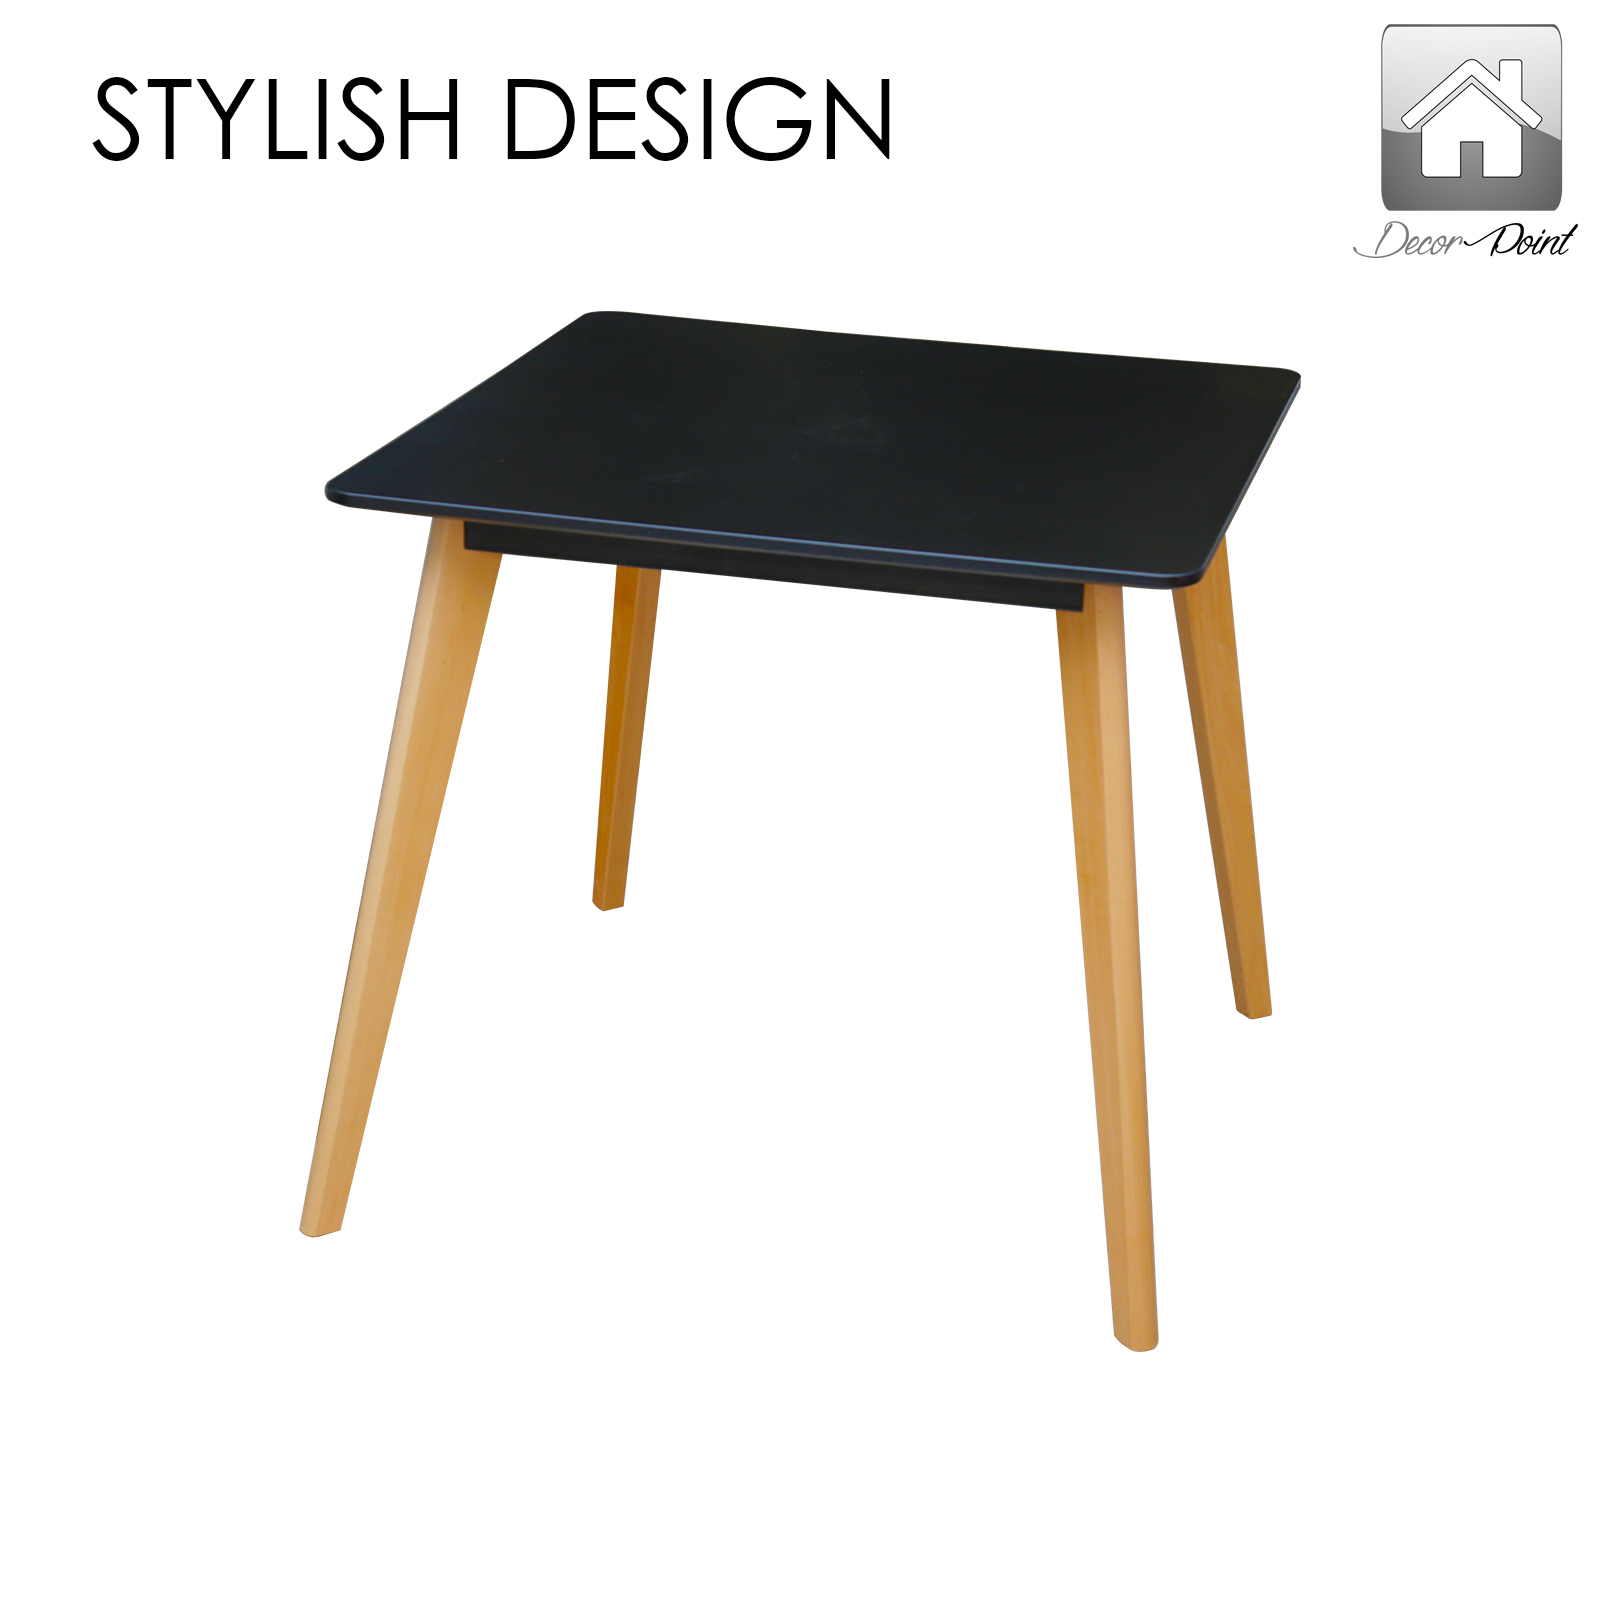 City Small Dining Table 4 x Replica Eames Sisly ABS  : City Small Table Blk 03 from www.ebay.com.au size 1600 x 1600 jpeg 336kB